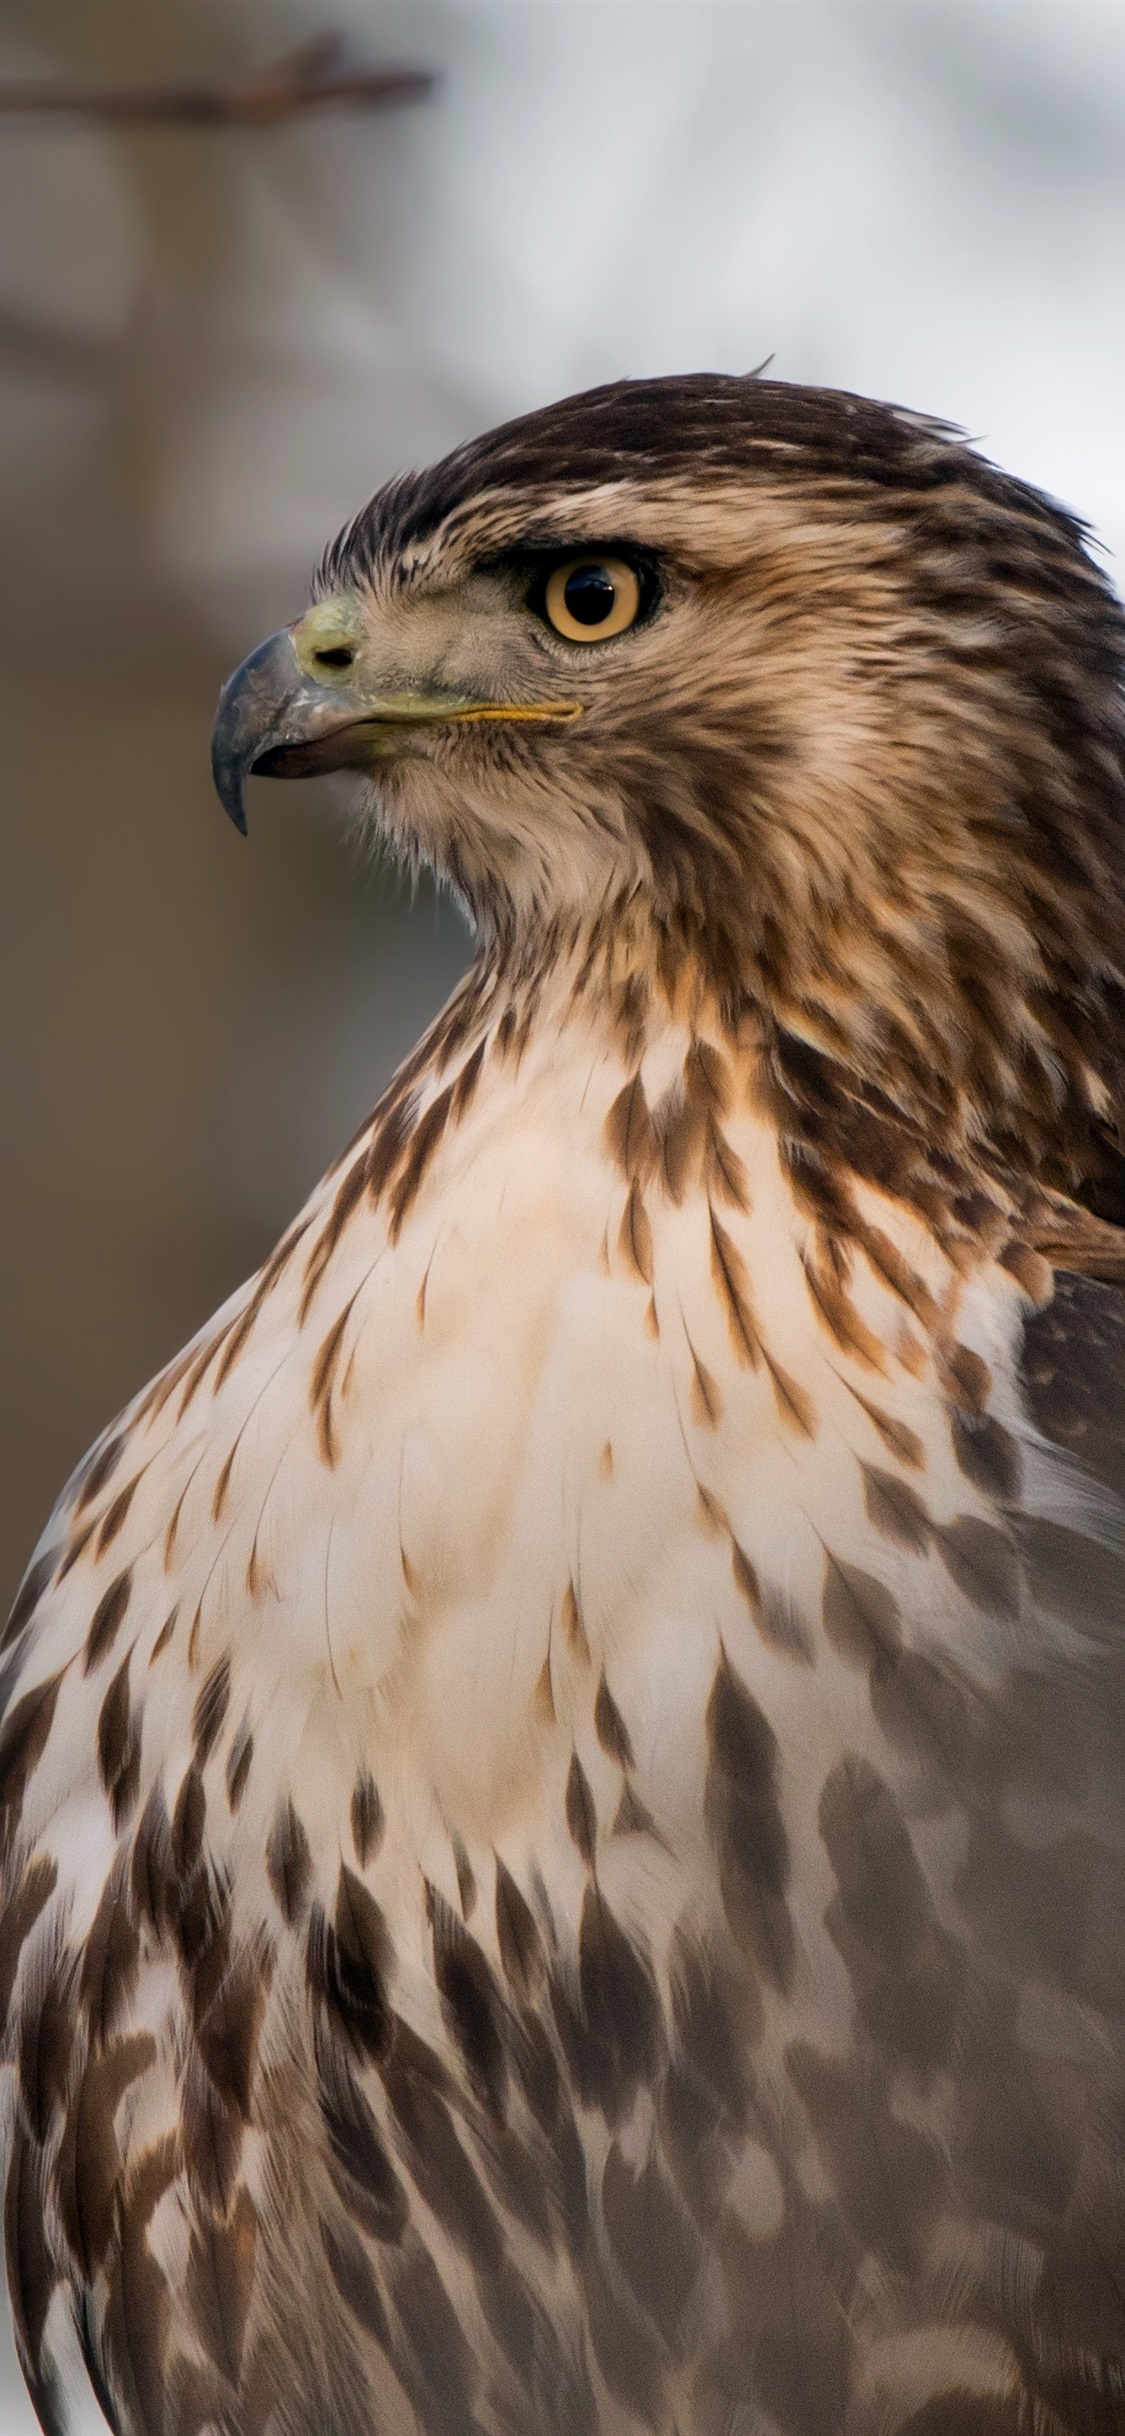 Wallpaper Red Tailed Hawk Head Eyes 3840x2160 UHD 4K Picture Image